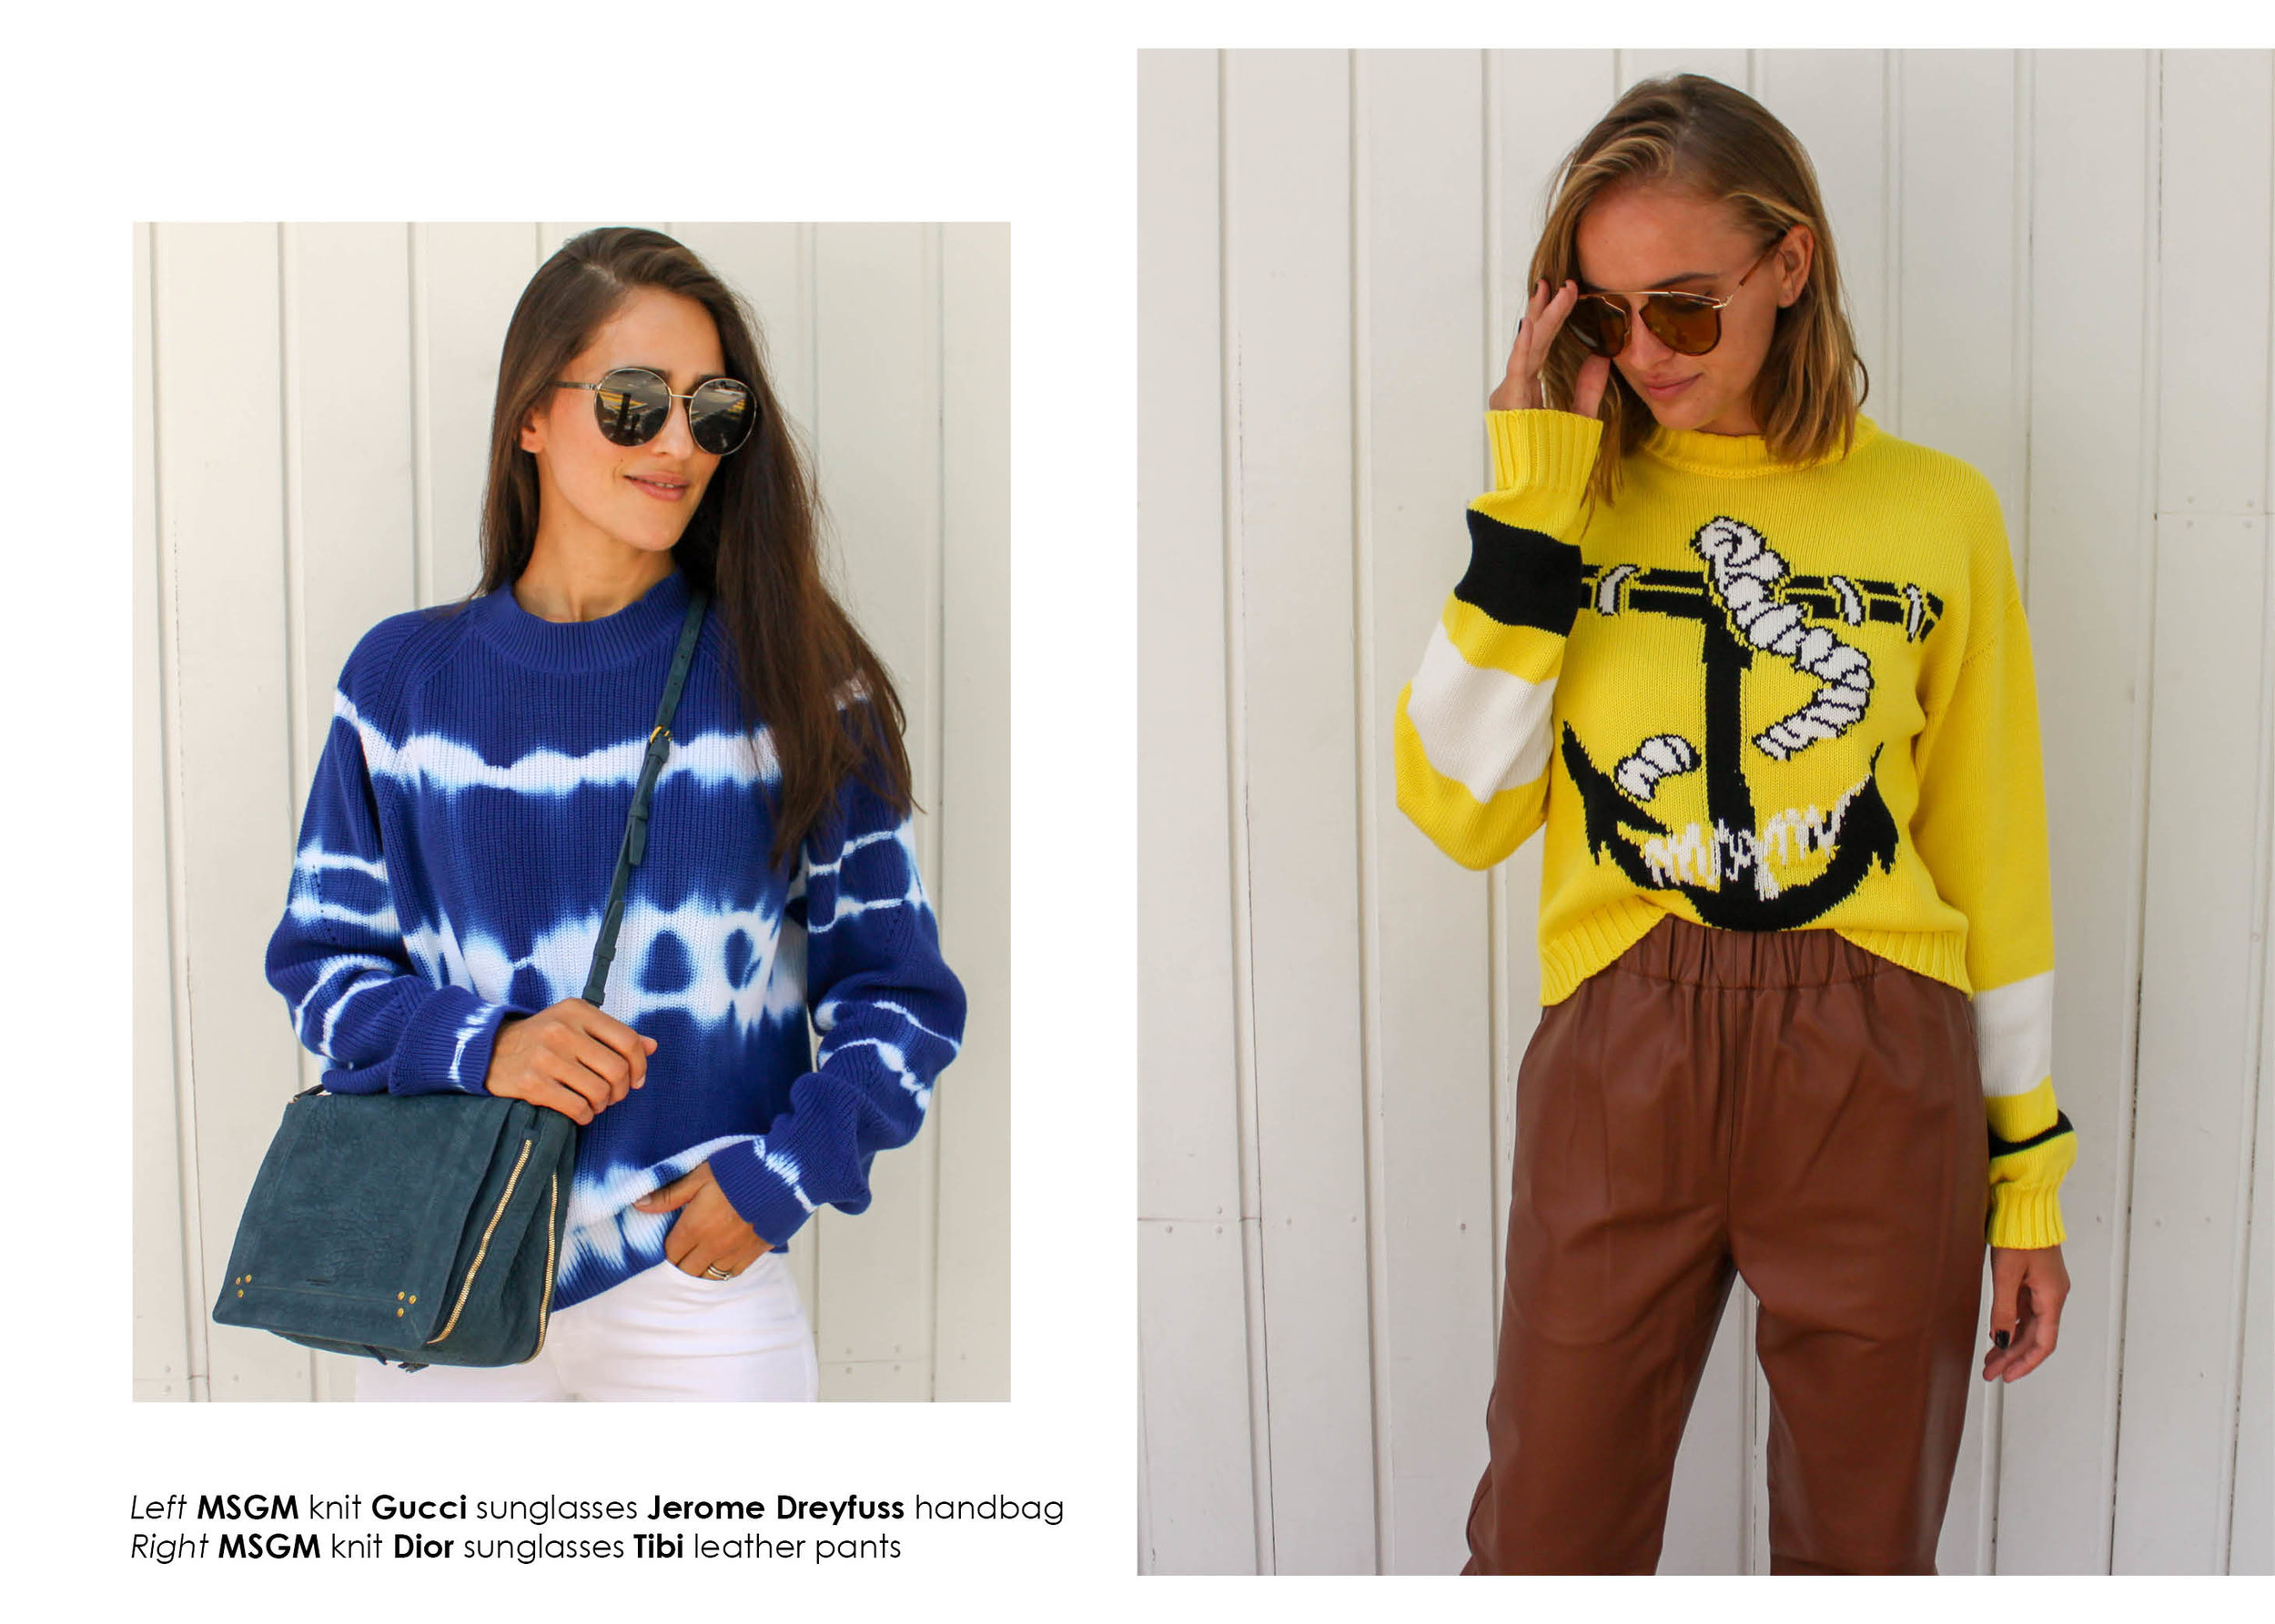 MSGM-Feb19-newsletter-layout-12.jpg